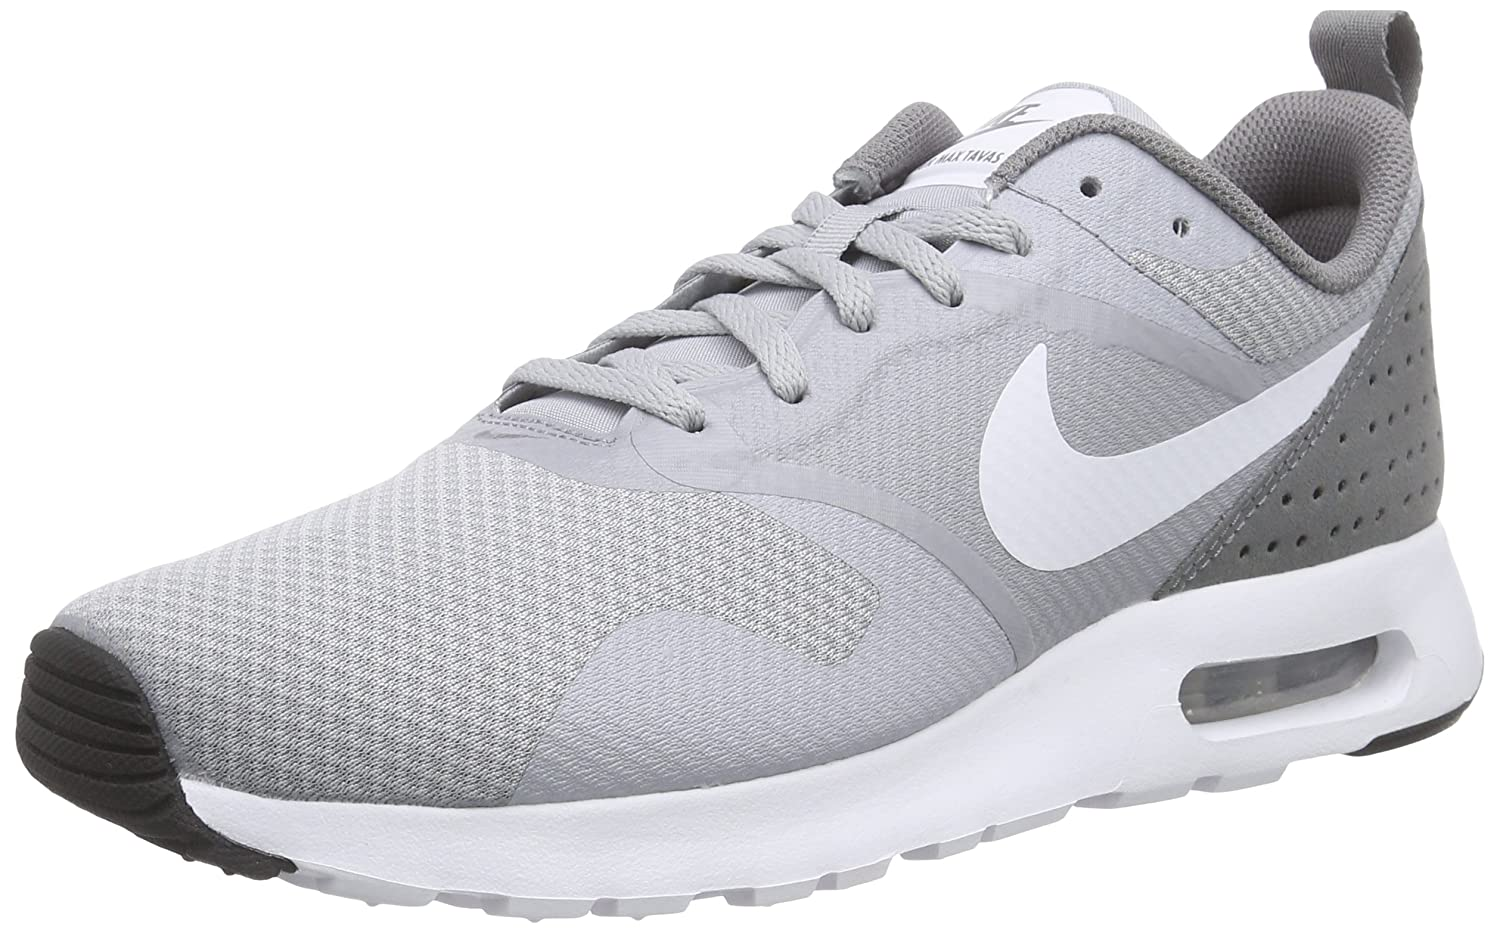 [ナイキ] NIKE スニーカー AIR MAX TRASIT B00VDJEF12 9.5 D(M) US Wolf Grey/White/Cool Grey/Wht